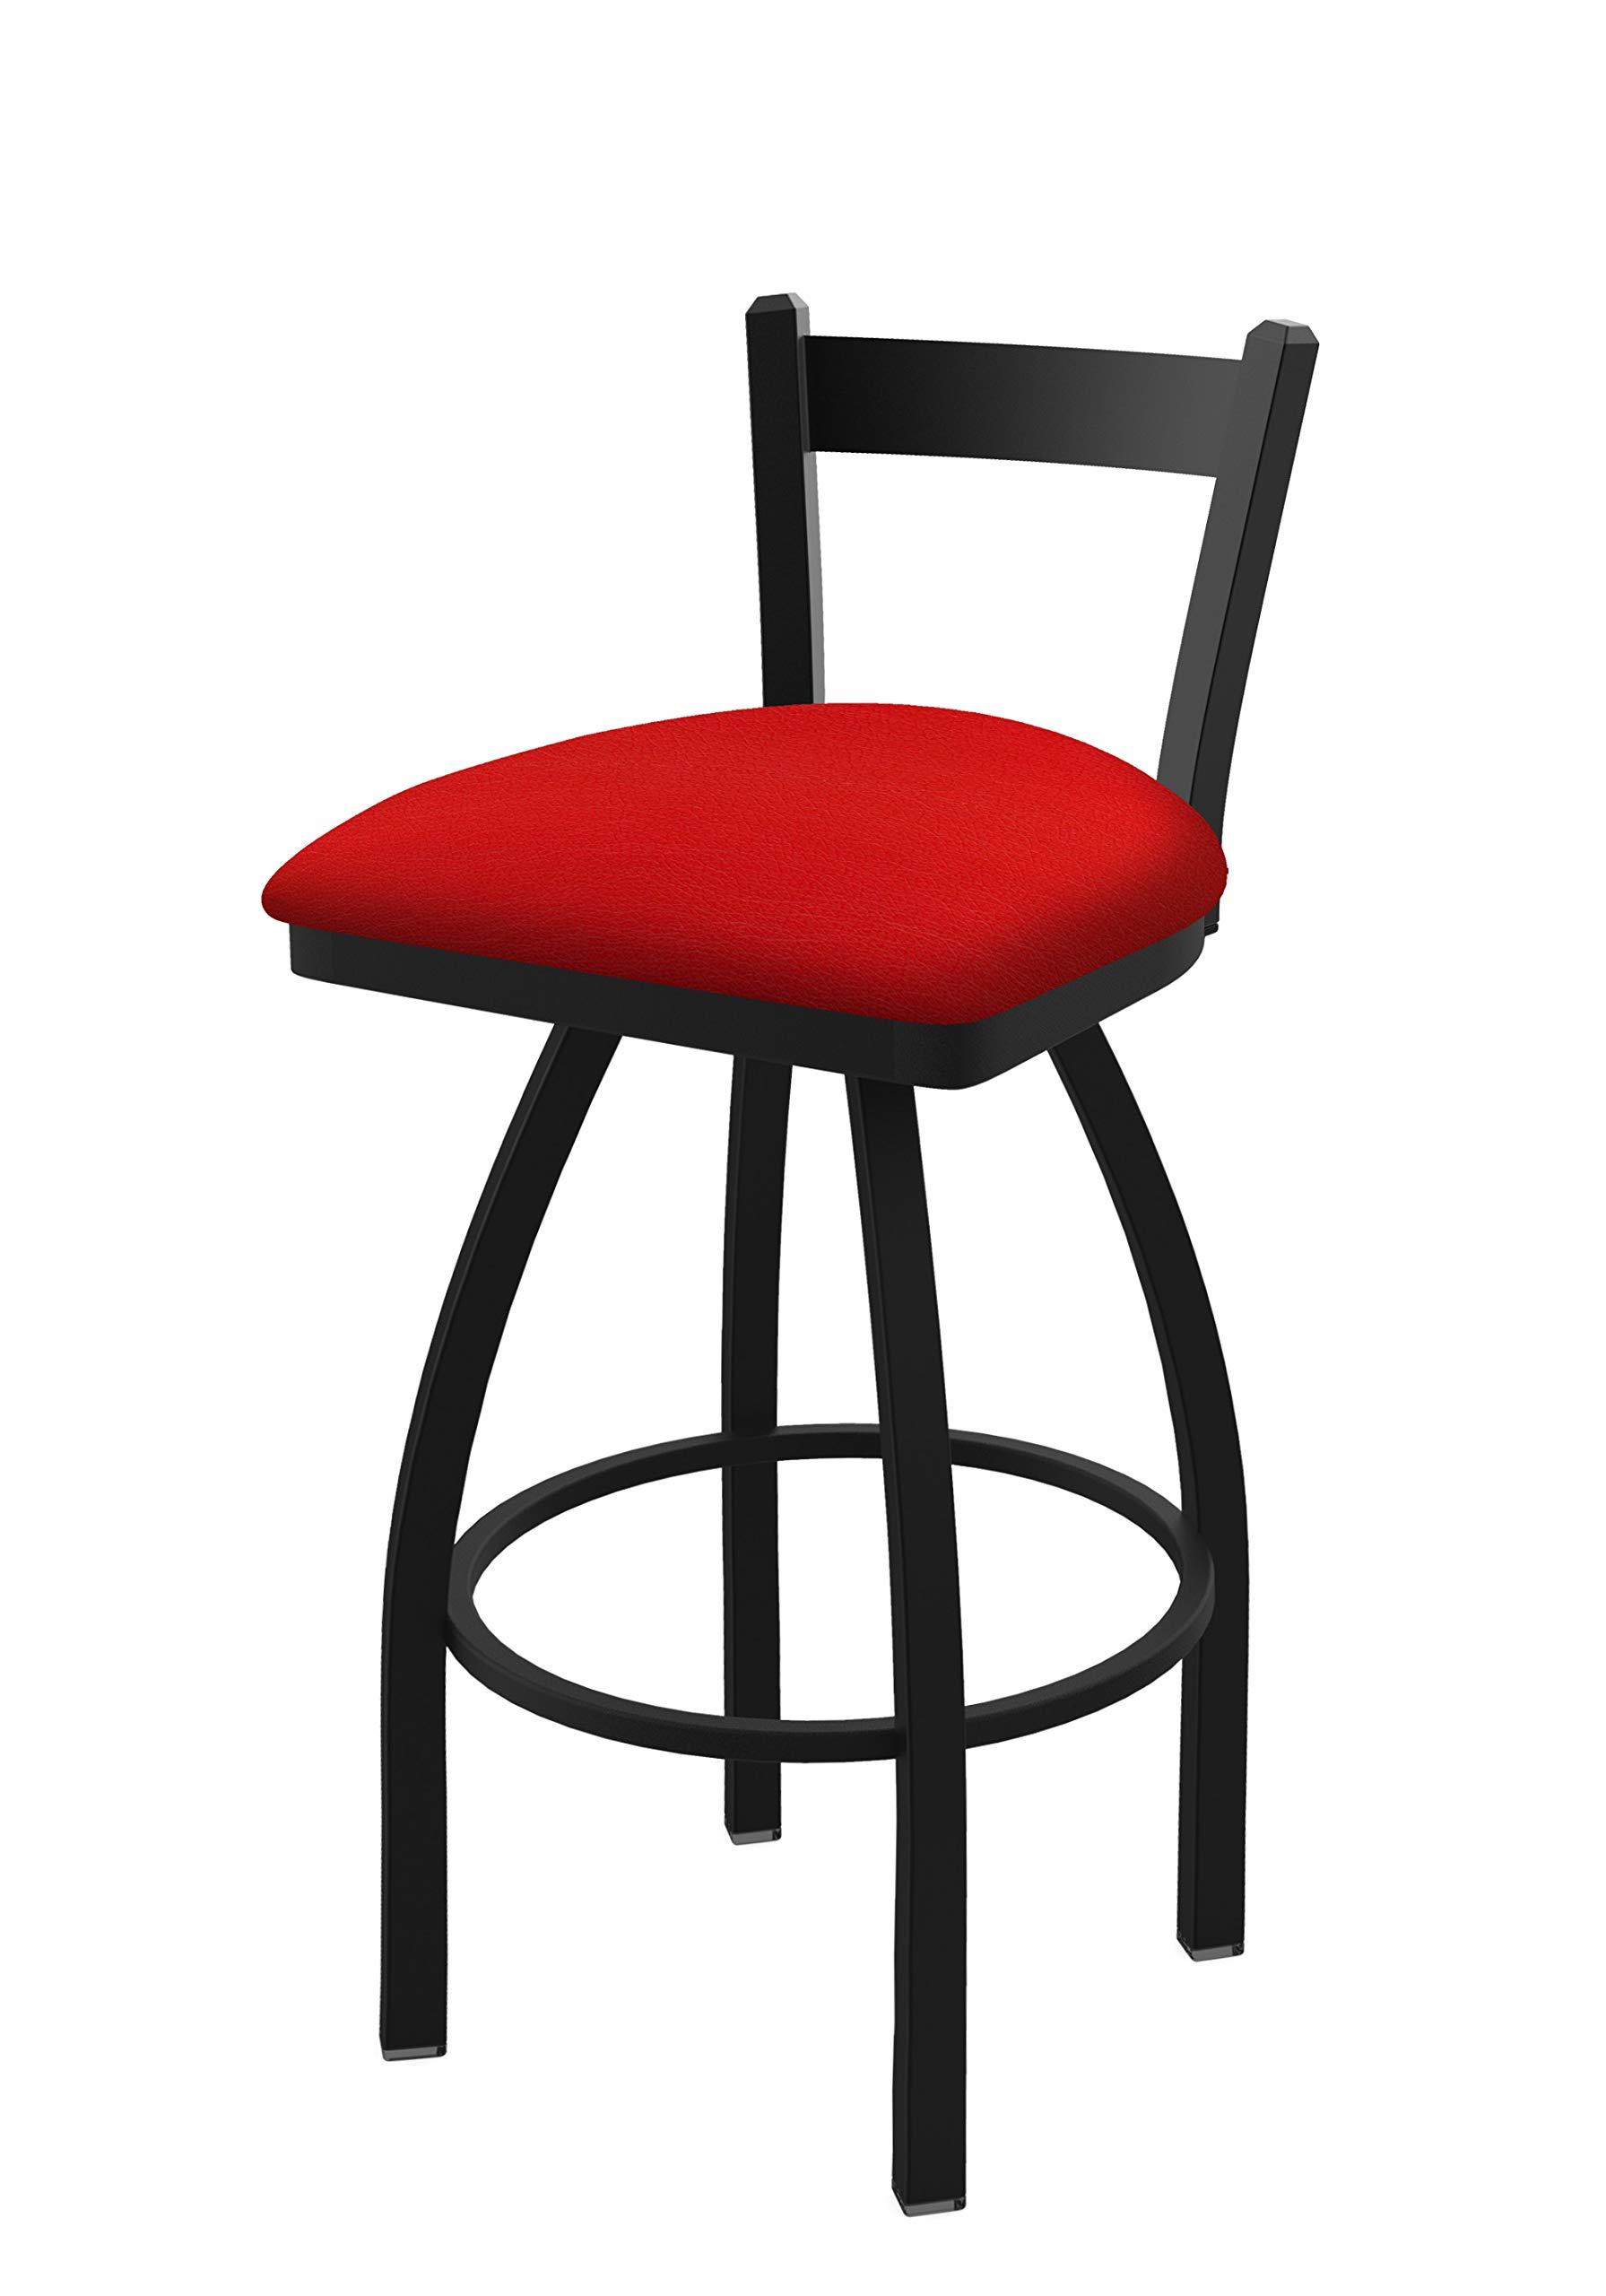 Holland Bar Stool Co. 82125BW011 821 Catalina 25'' Low Back Swivel Counter Black Wrinkle Finish and Canter Red Seat Bar Stool,